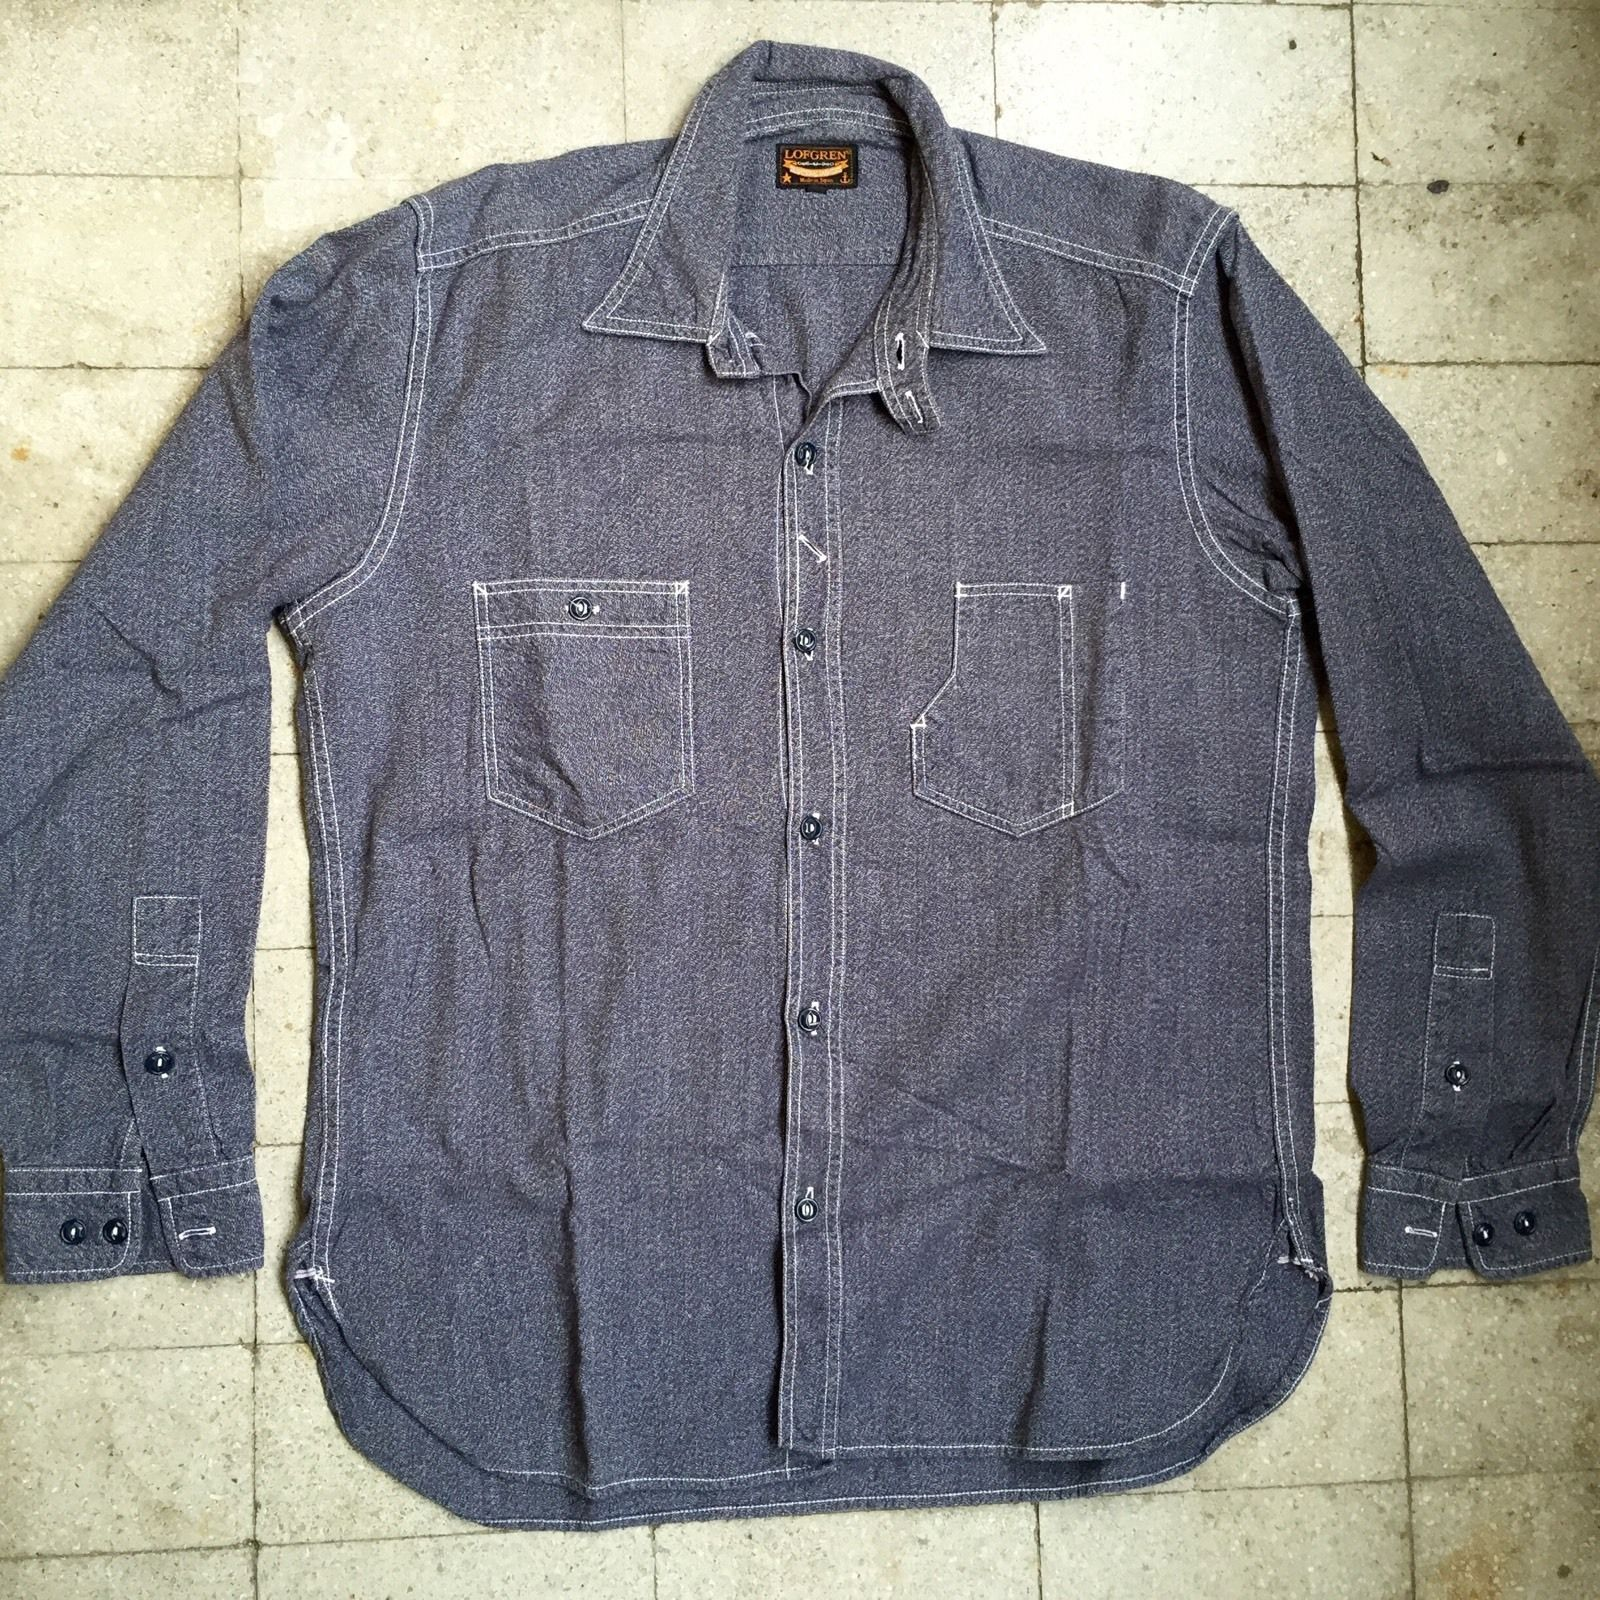 7a50293ebd83 US $80.00 Pre-owned in Clothing, Shoes & Accessories, Men's Clothing, Casual  Shirts